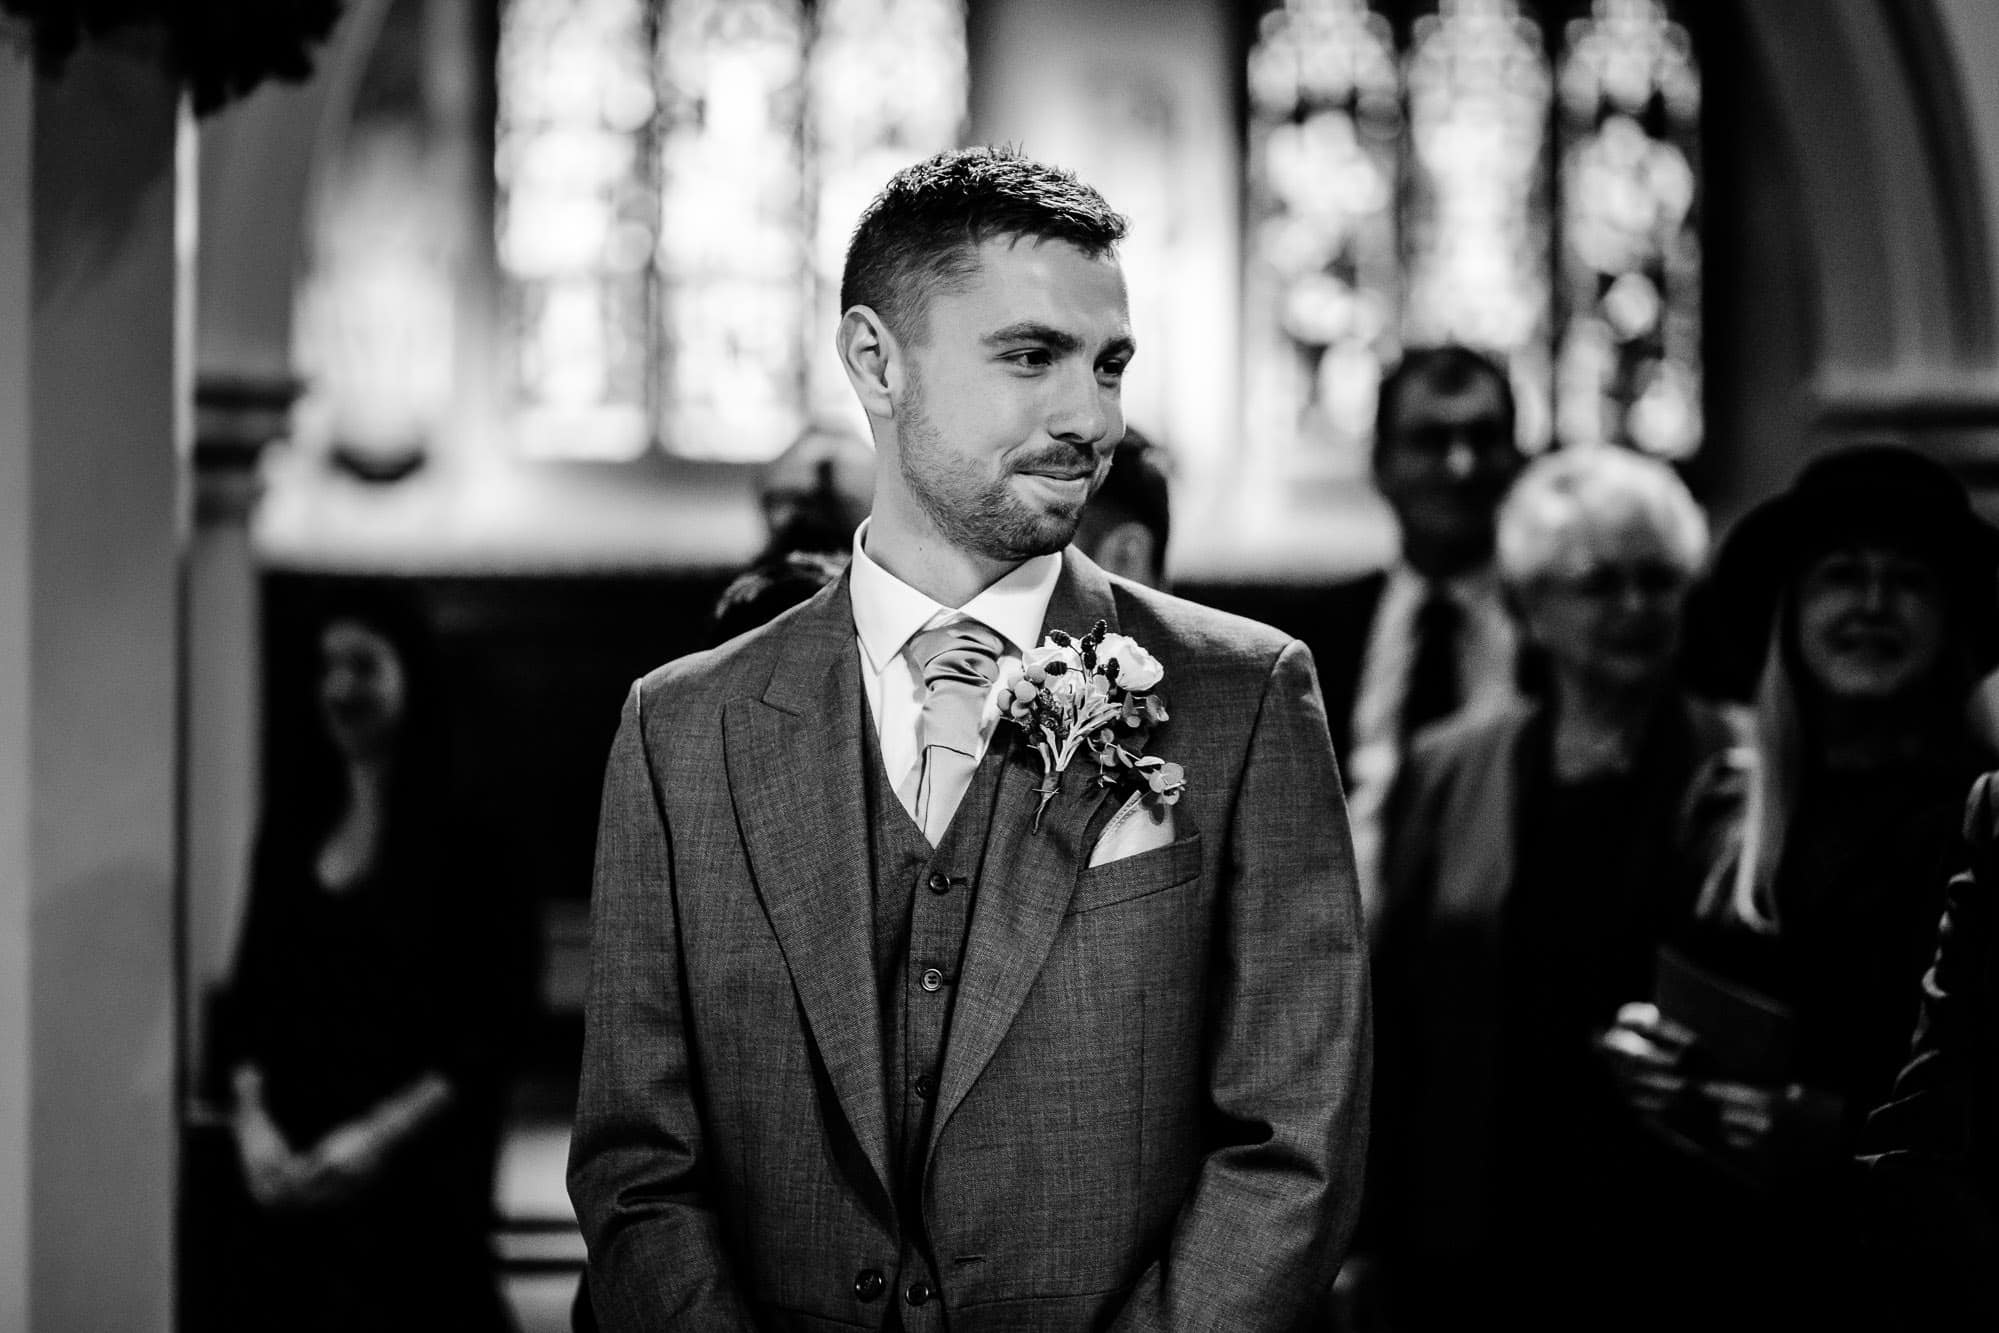 Groom watching bride walk down aisle St James Parish Church, Weybridge